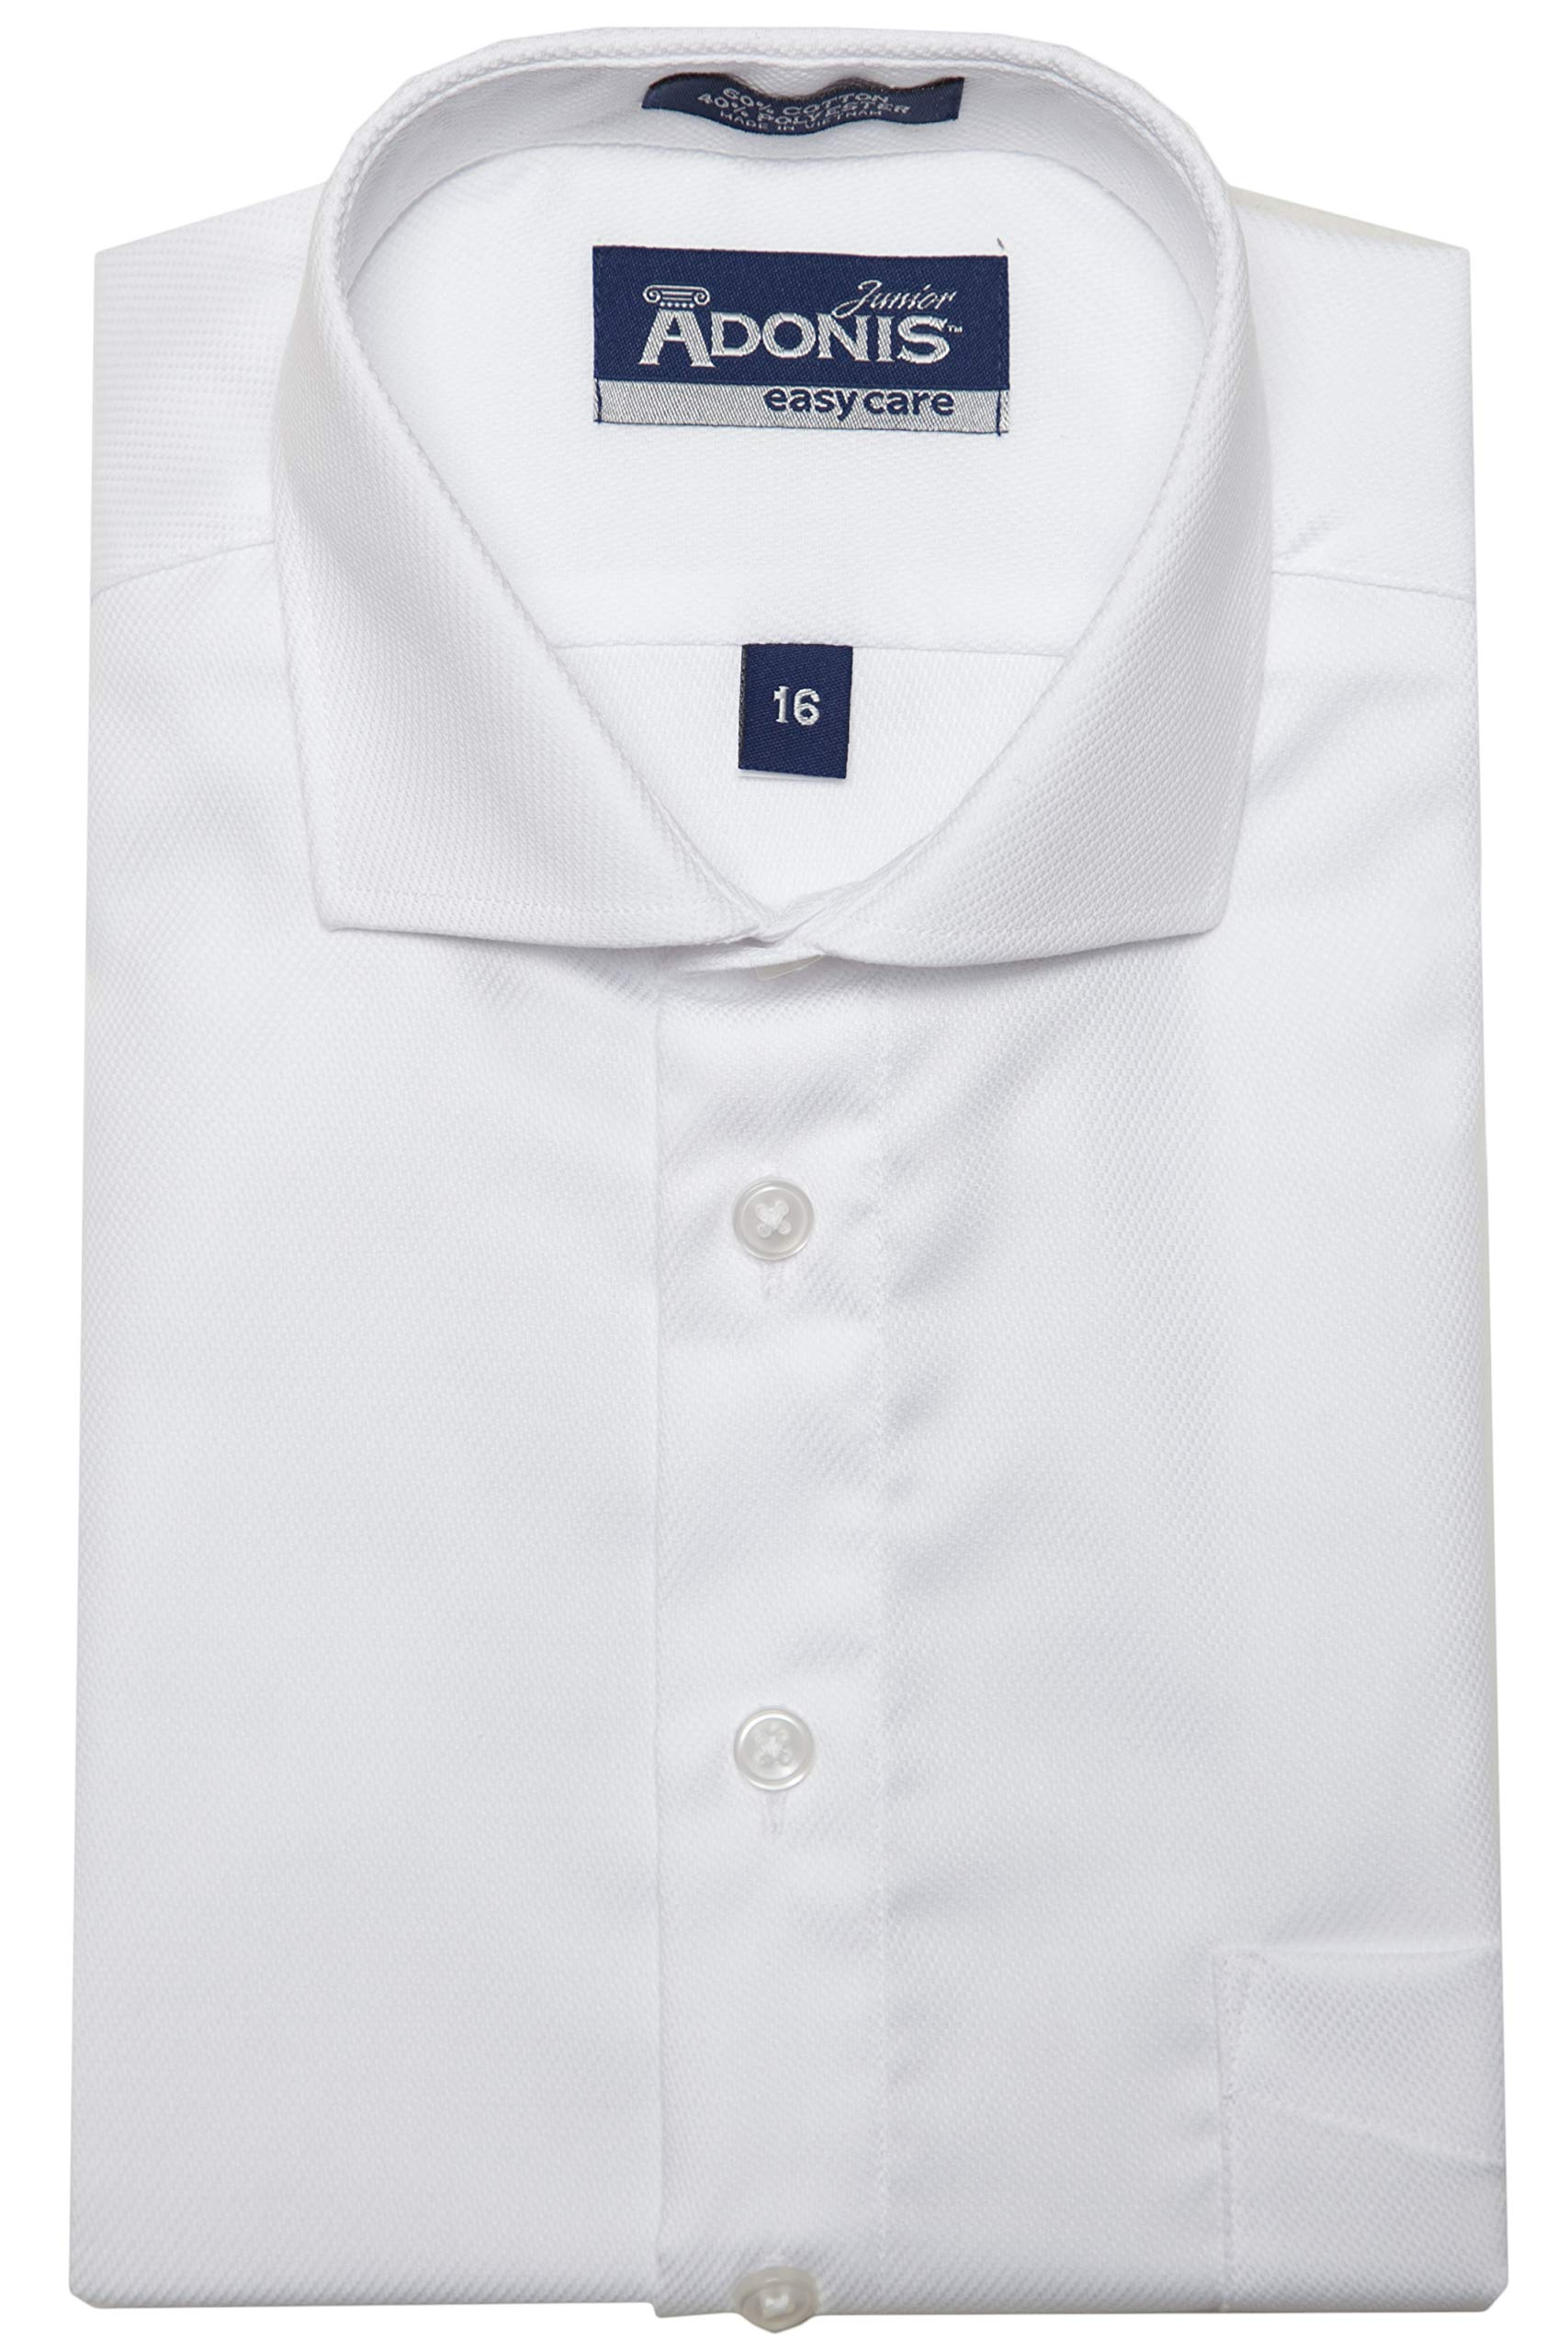 Adonis Shirts Inc. Boys Poly Cotton Easy Care Barrel Cuff Open Twist (18) White